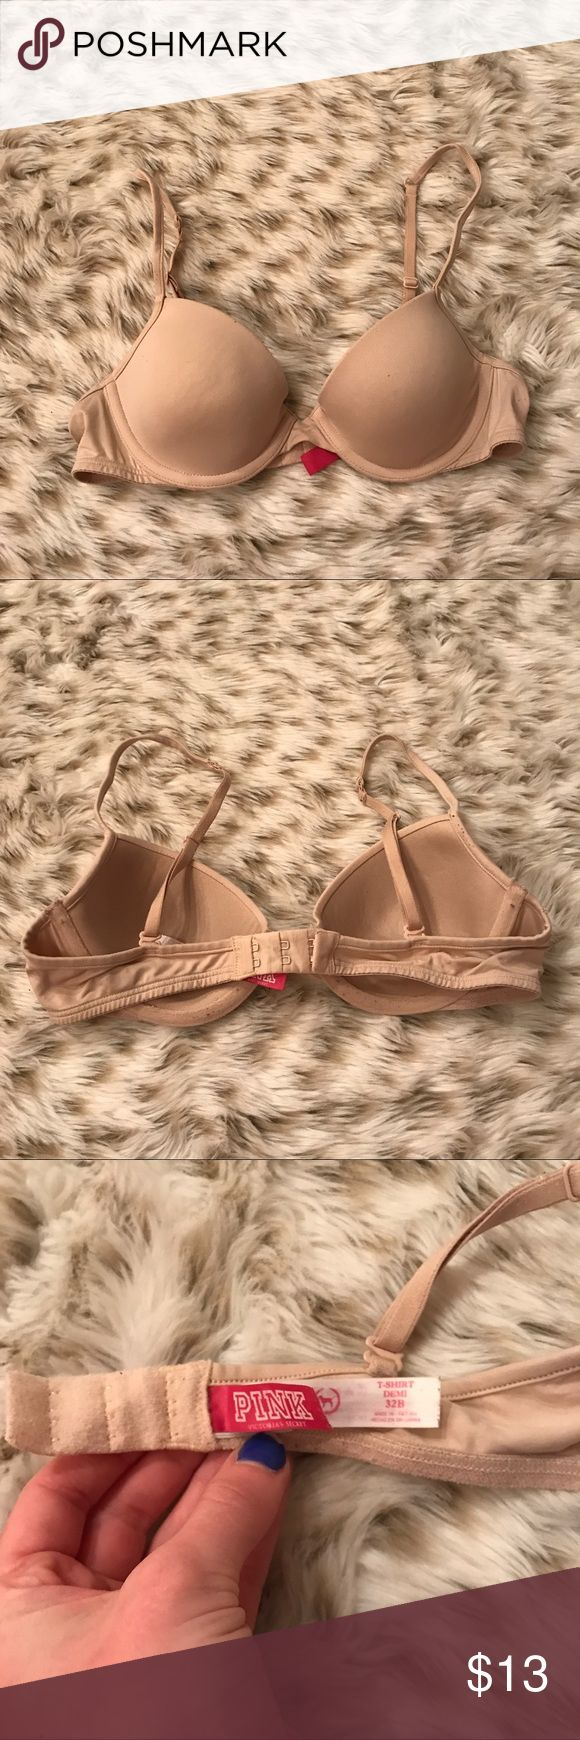 VS PINK Nude t shirt Demi bra Victoria's Secret pink nude t Shirt Demi bra! Lightly lined! Size 32B! Overall good condition. Little bit of piling. Lots of life left PINK Victoria's Secret Intimates & Sleepwear Bras